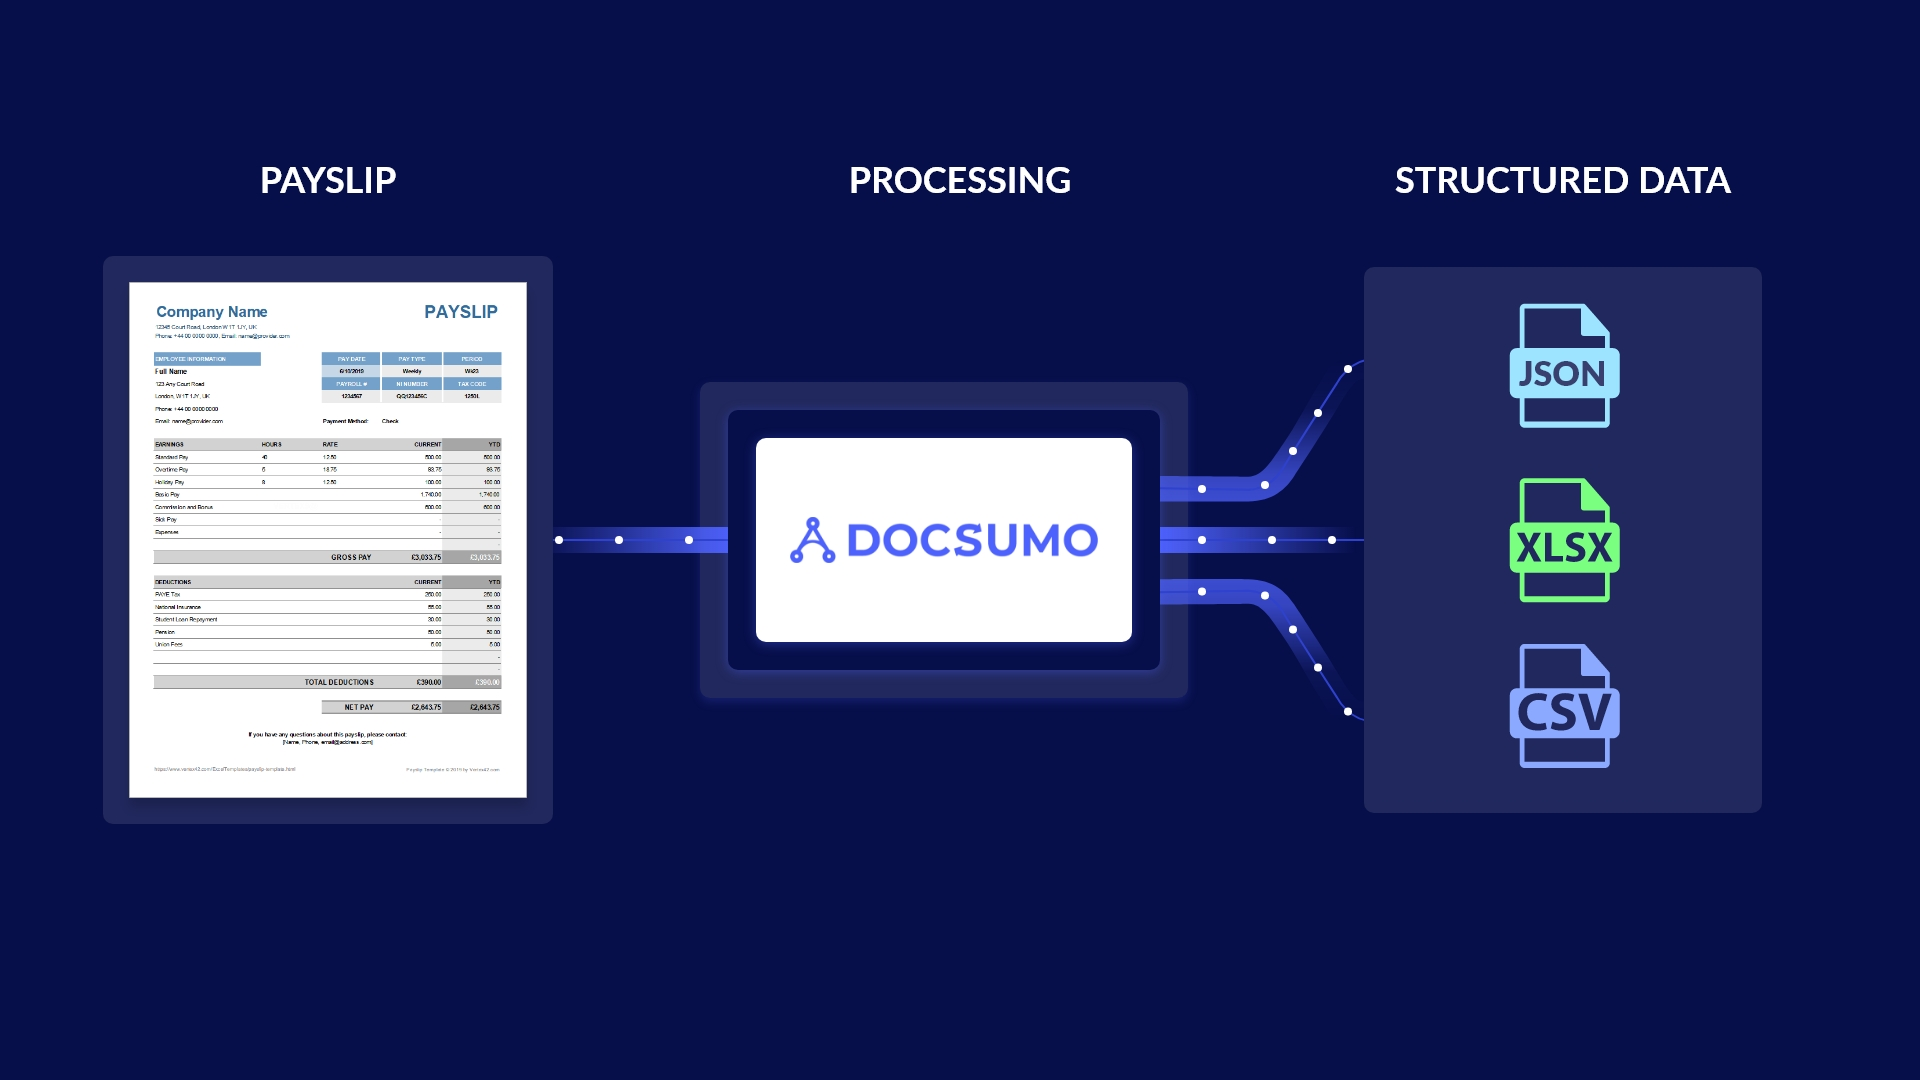 How to Automate Payslip Data Extraction using Docsumo's Intelligent OCR Engine